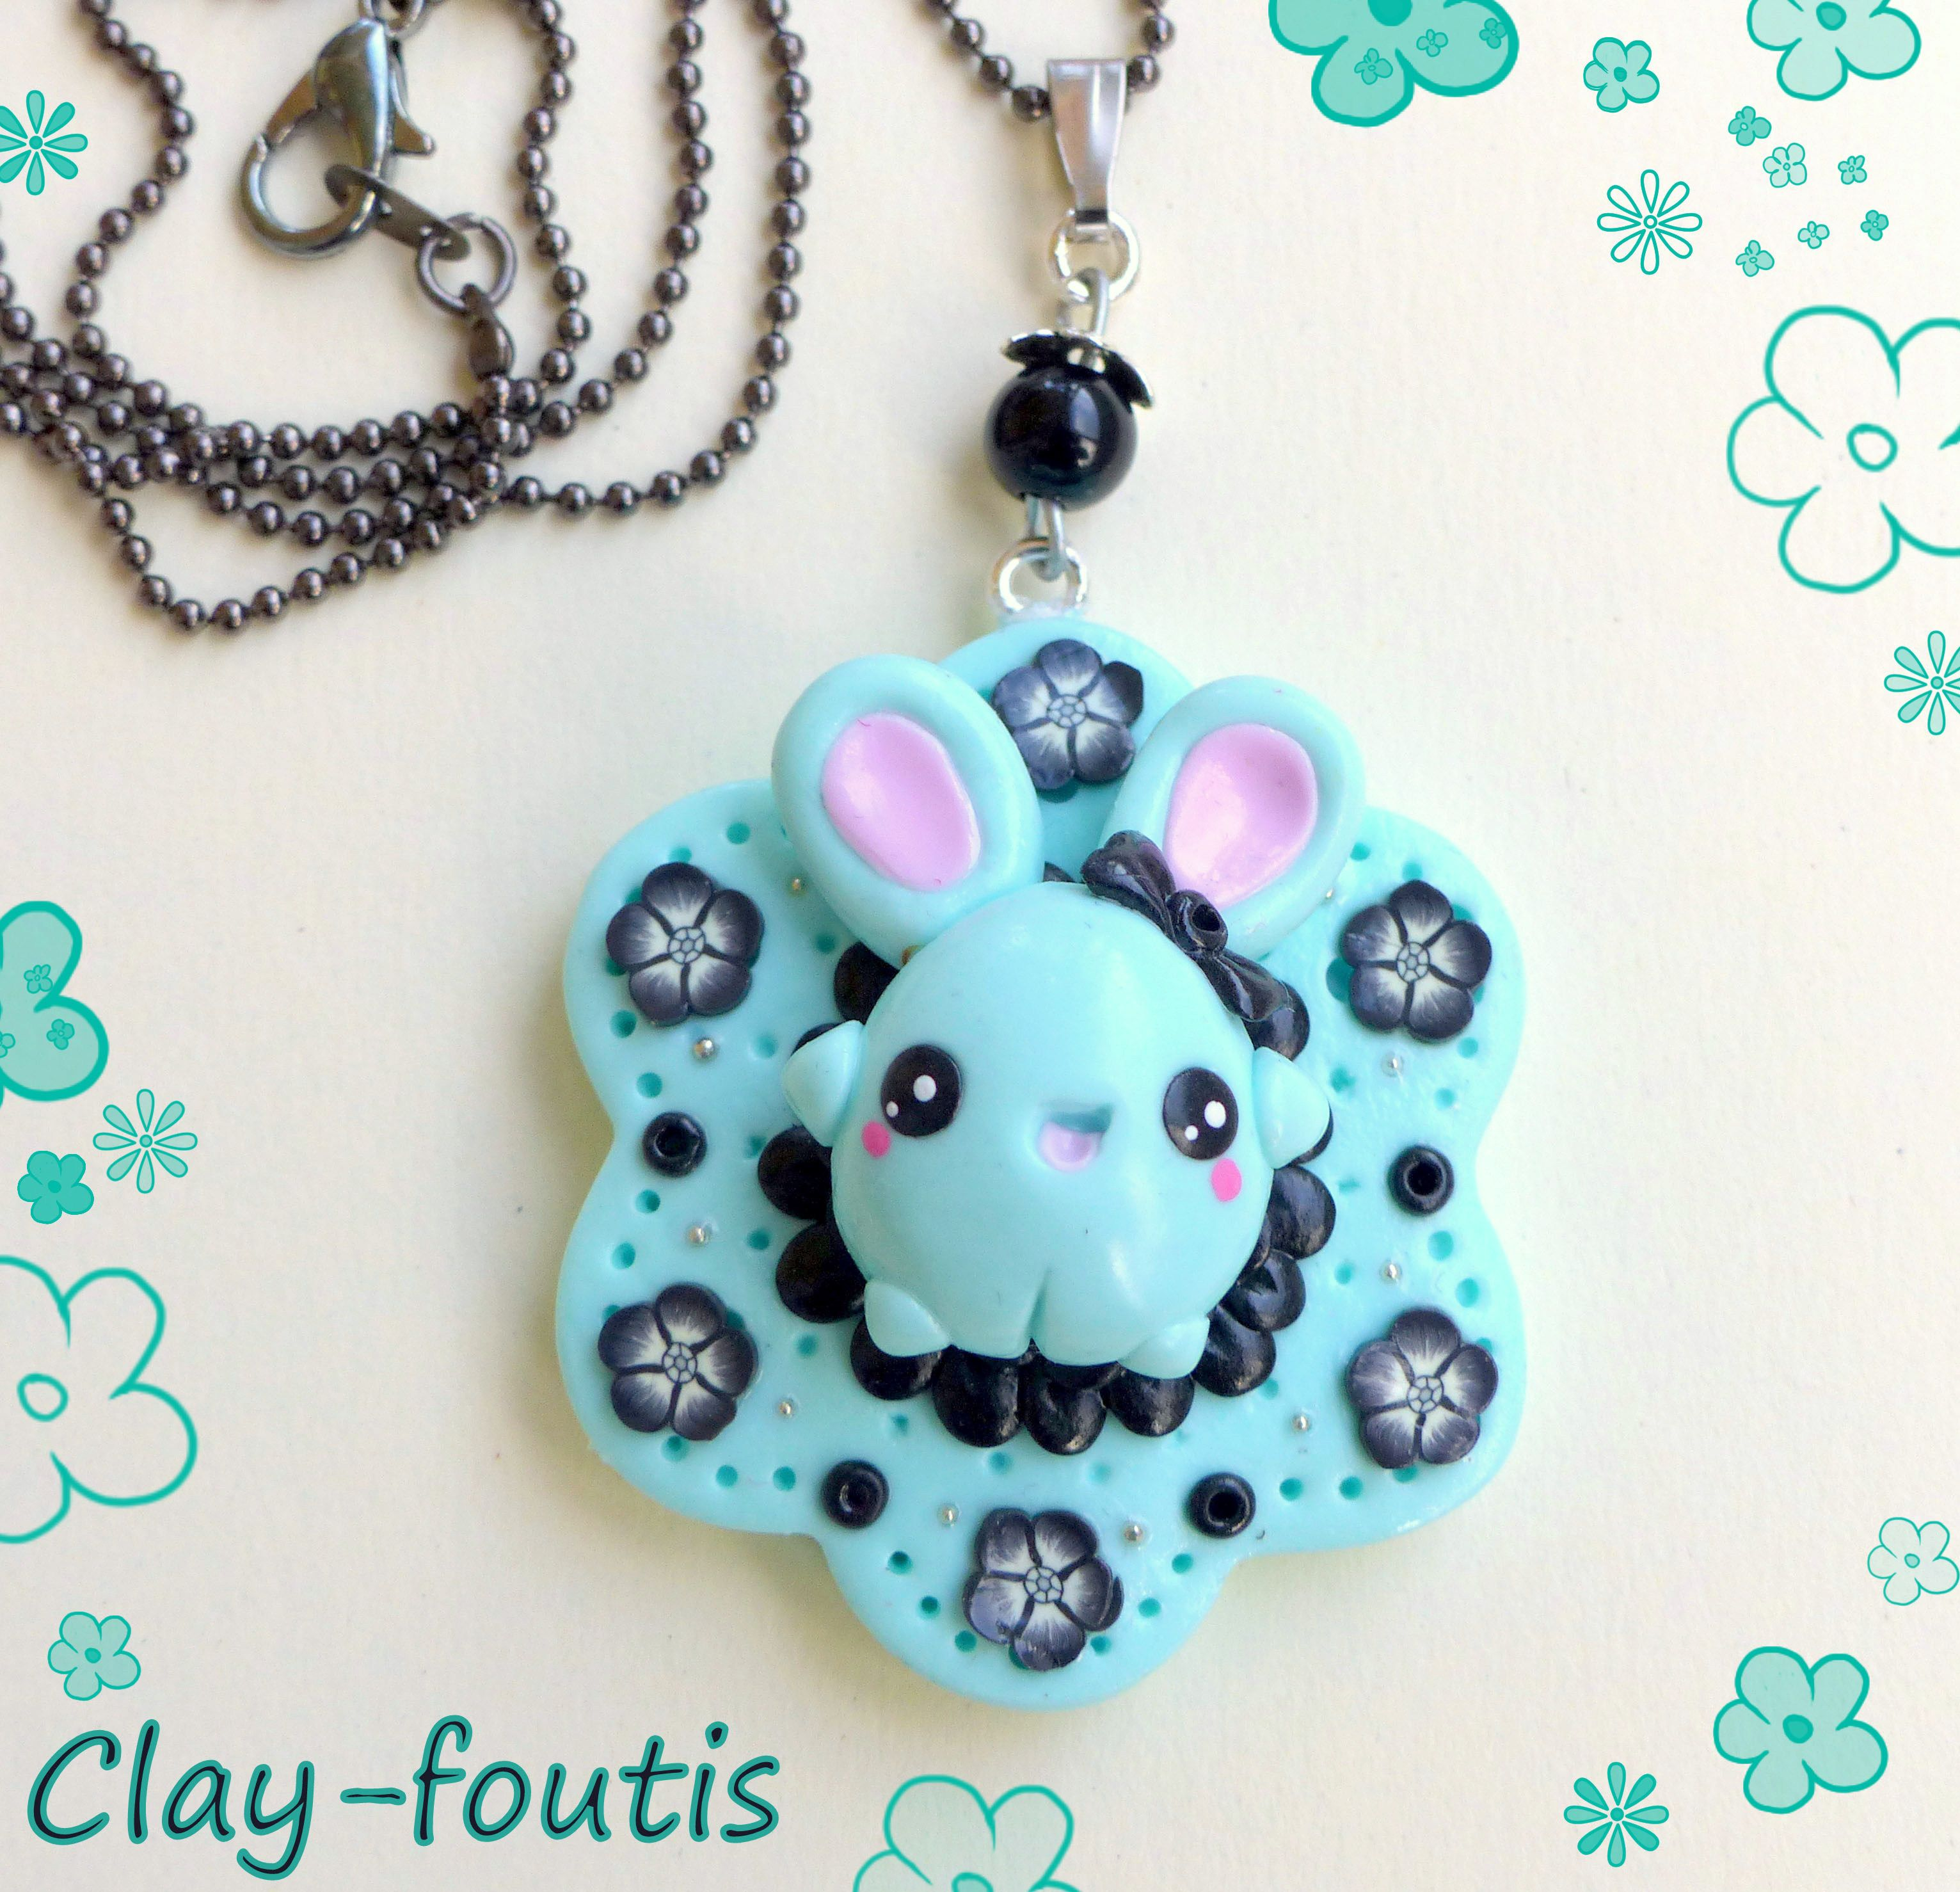 """collier à bidules"" lapin menthe fimo    http://clay-foutis.alittlemarket.com #fimo #cernit #polymerclay #patepolymere #lapin #bunny #kawaii #cute #sweet #mignon #pastel #bleu #blue #retro #kitsch #geek #emo #punk #goth #gothic #gothique #collier #necklace #faitmain #handmade"